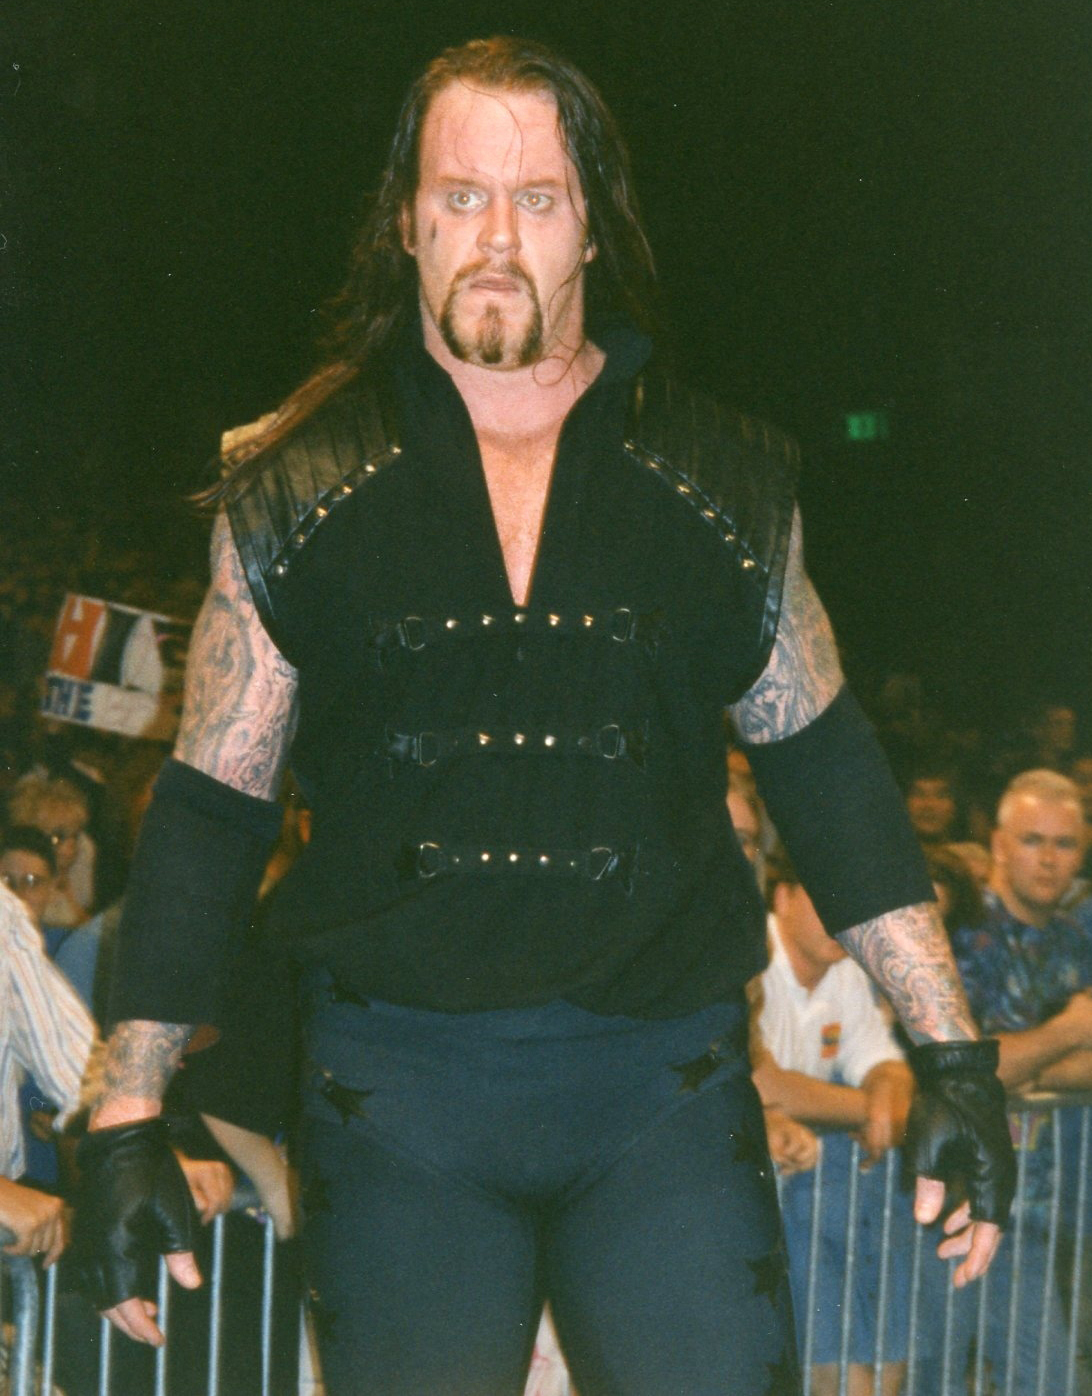 Wwe The Undertaker 1990s The undertaker in september 1997.